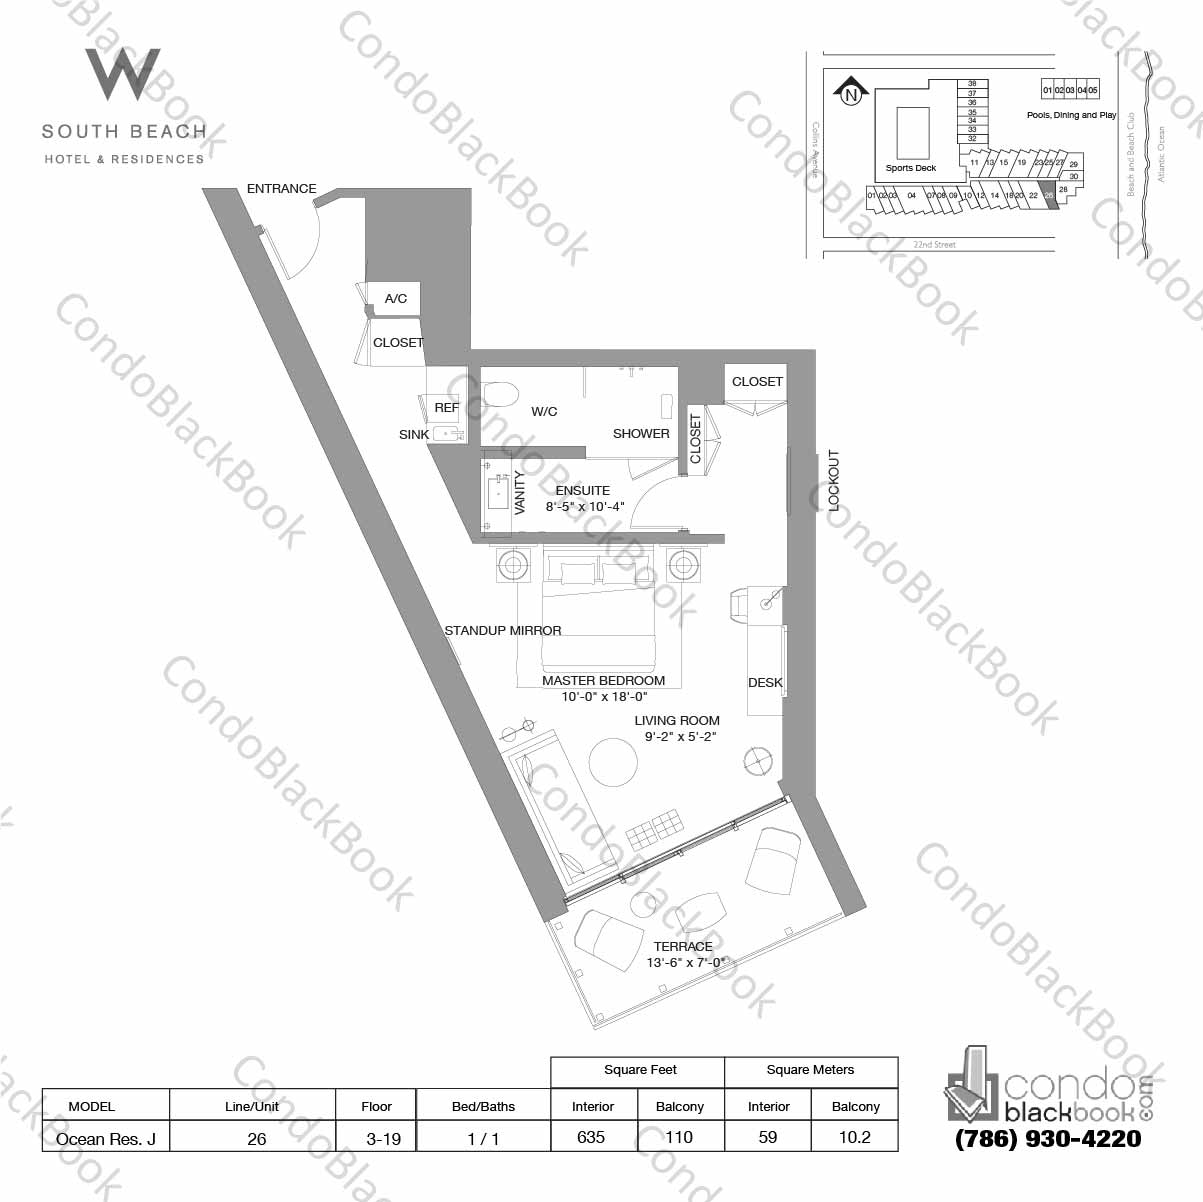 Floor plan for W South Beach South Beach Miami Beach, model Ocean Res. J, line 26, 1 / 1 bedrooms, 635 sq ft